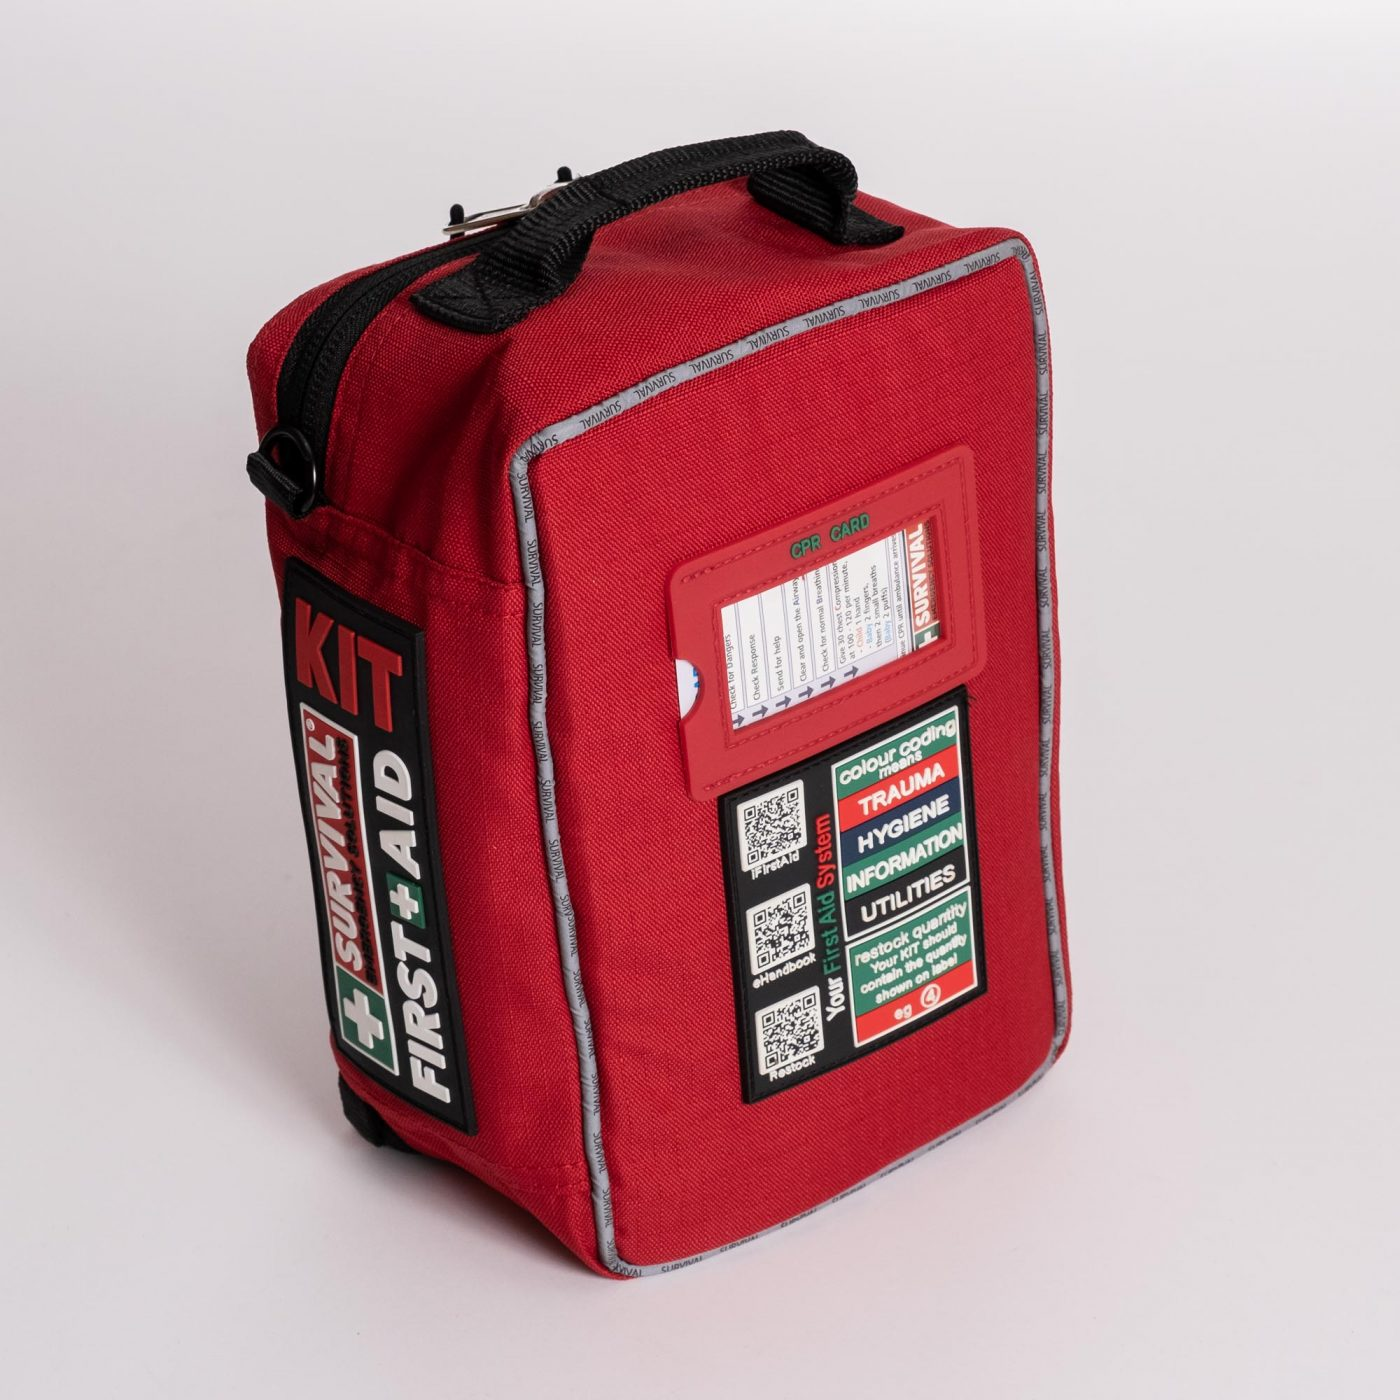 A247 Survival Workplace First Aid Kit 0761